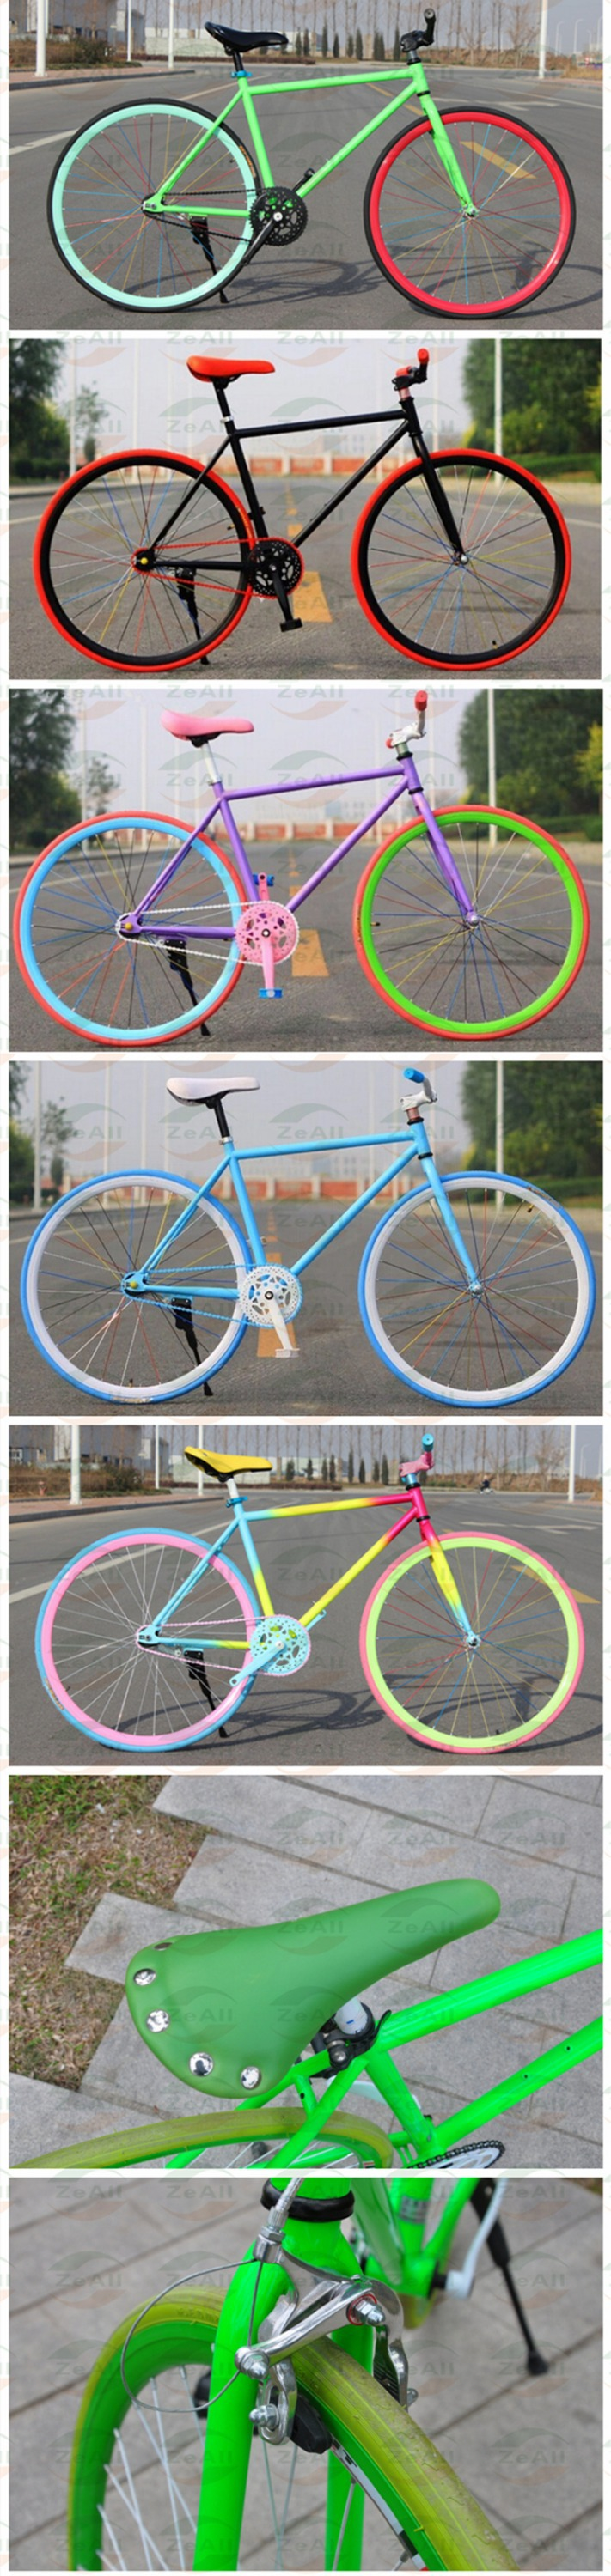 26 inch good quality carbon steel fixed gear bike/bicycle